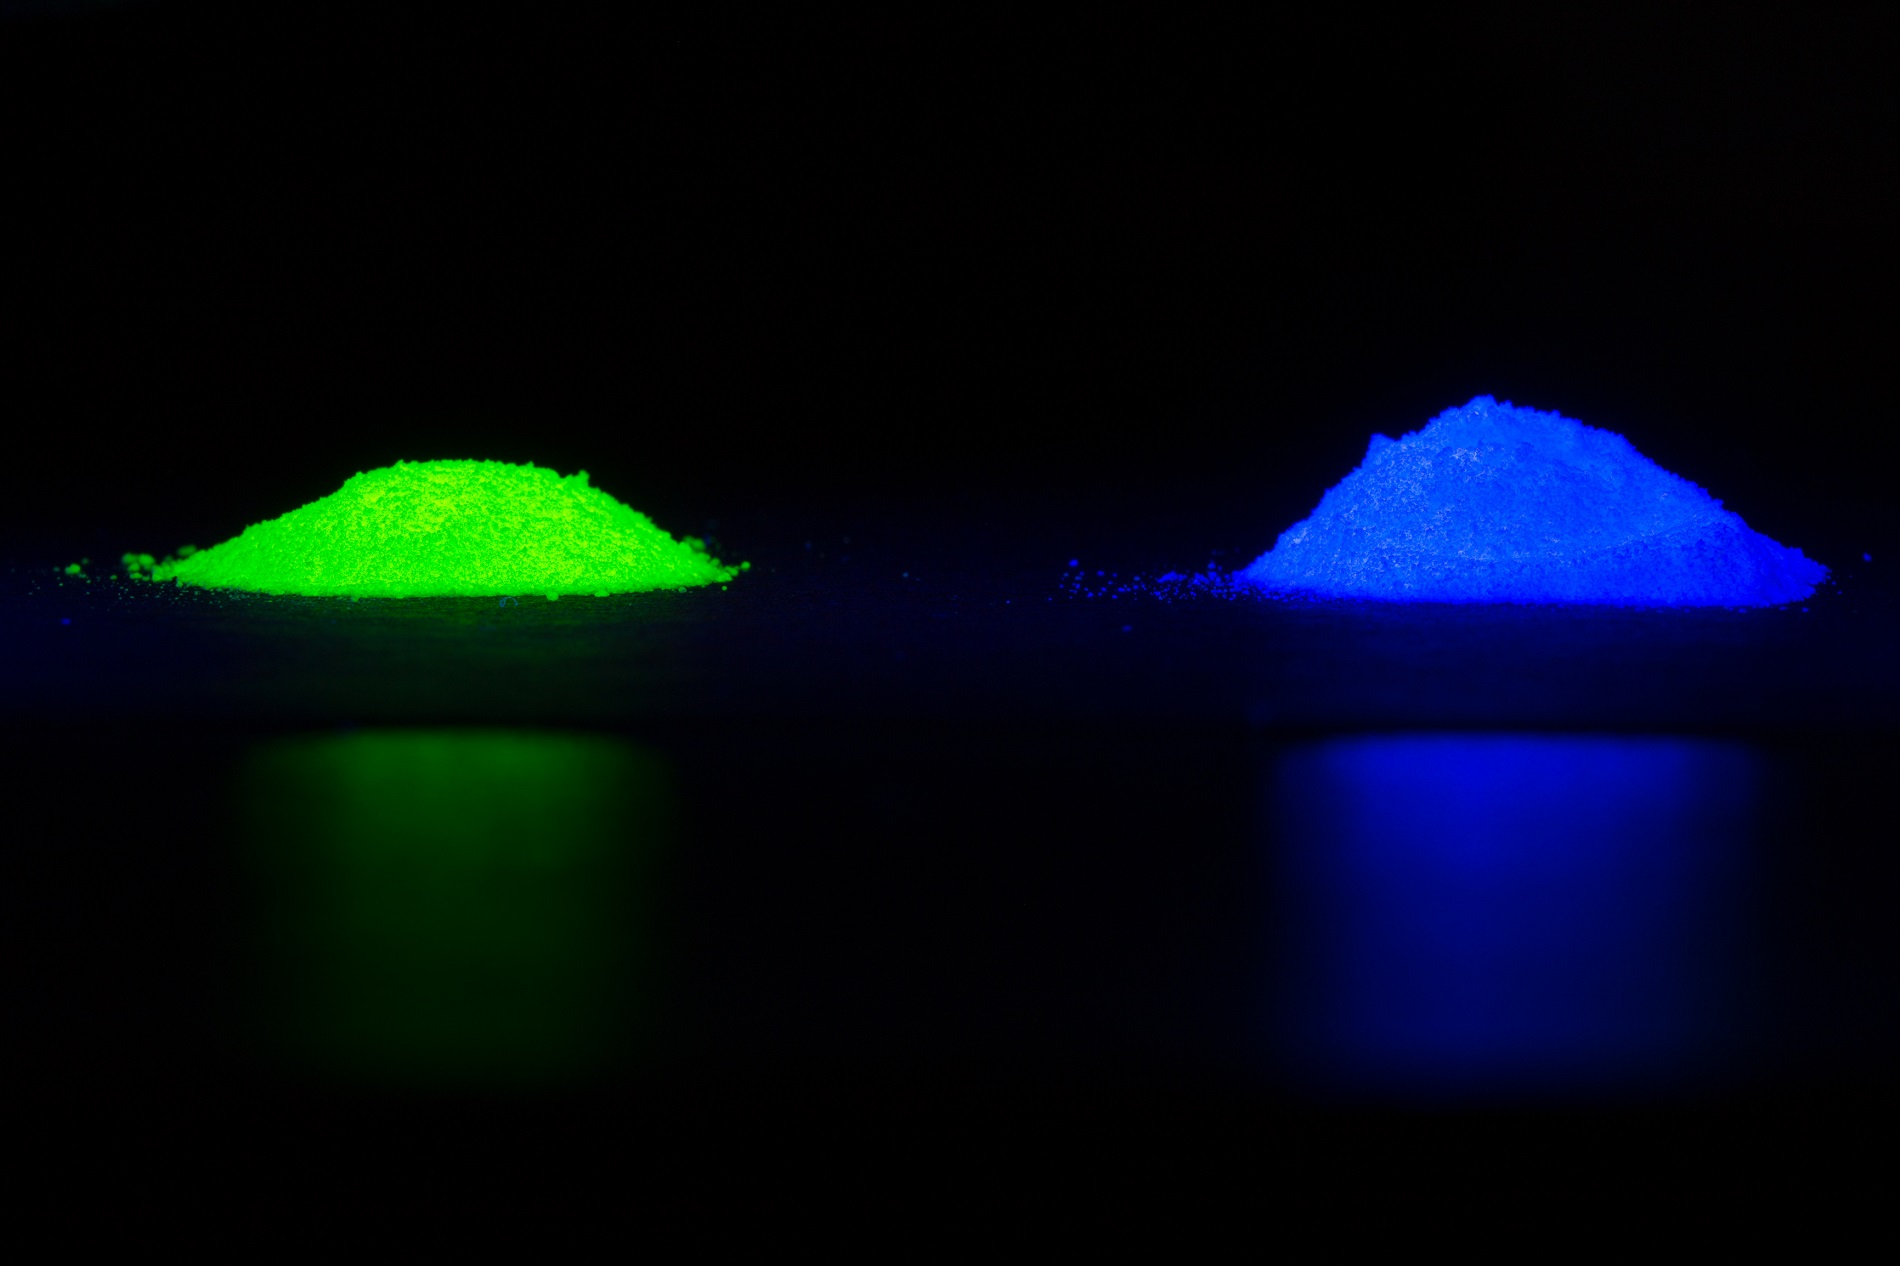 LED phosphors